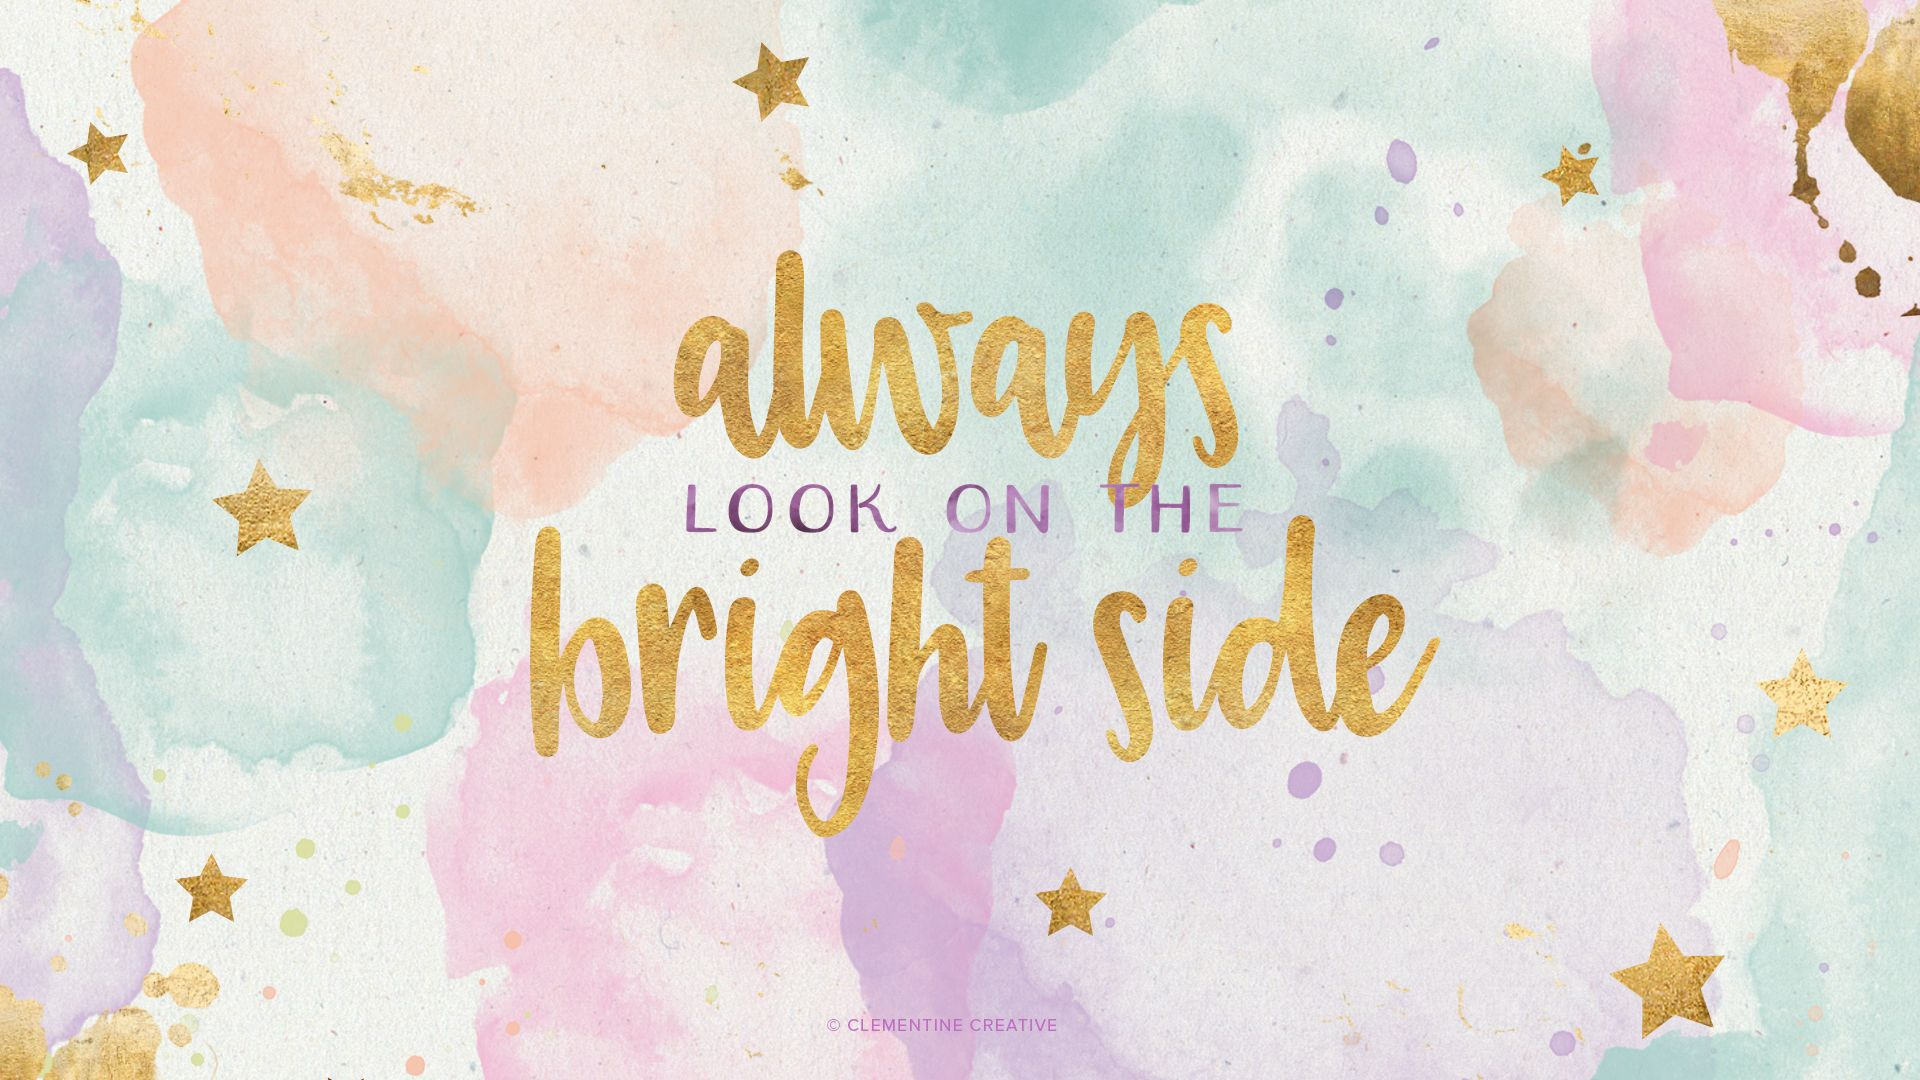 Wallpaper Always Look on the Bright Side Wallpaper